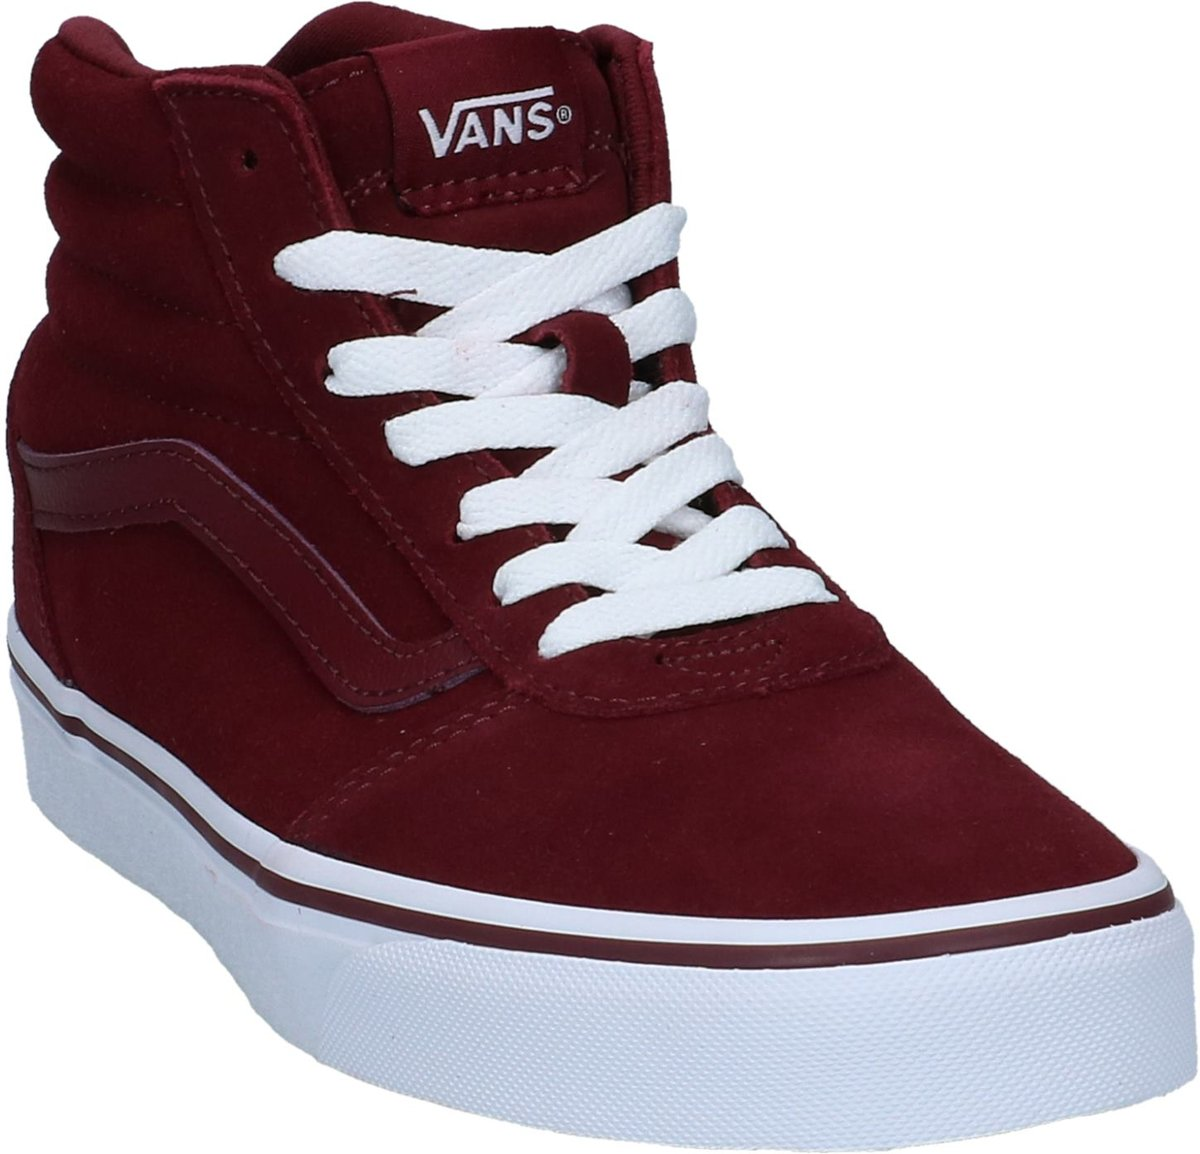 vans dames bordeaux